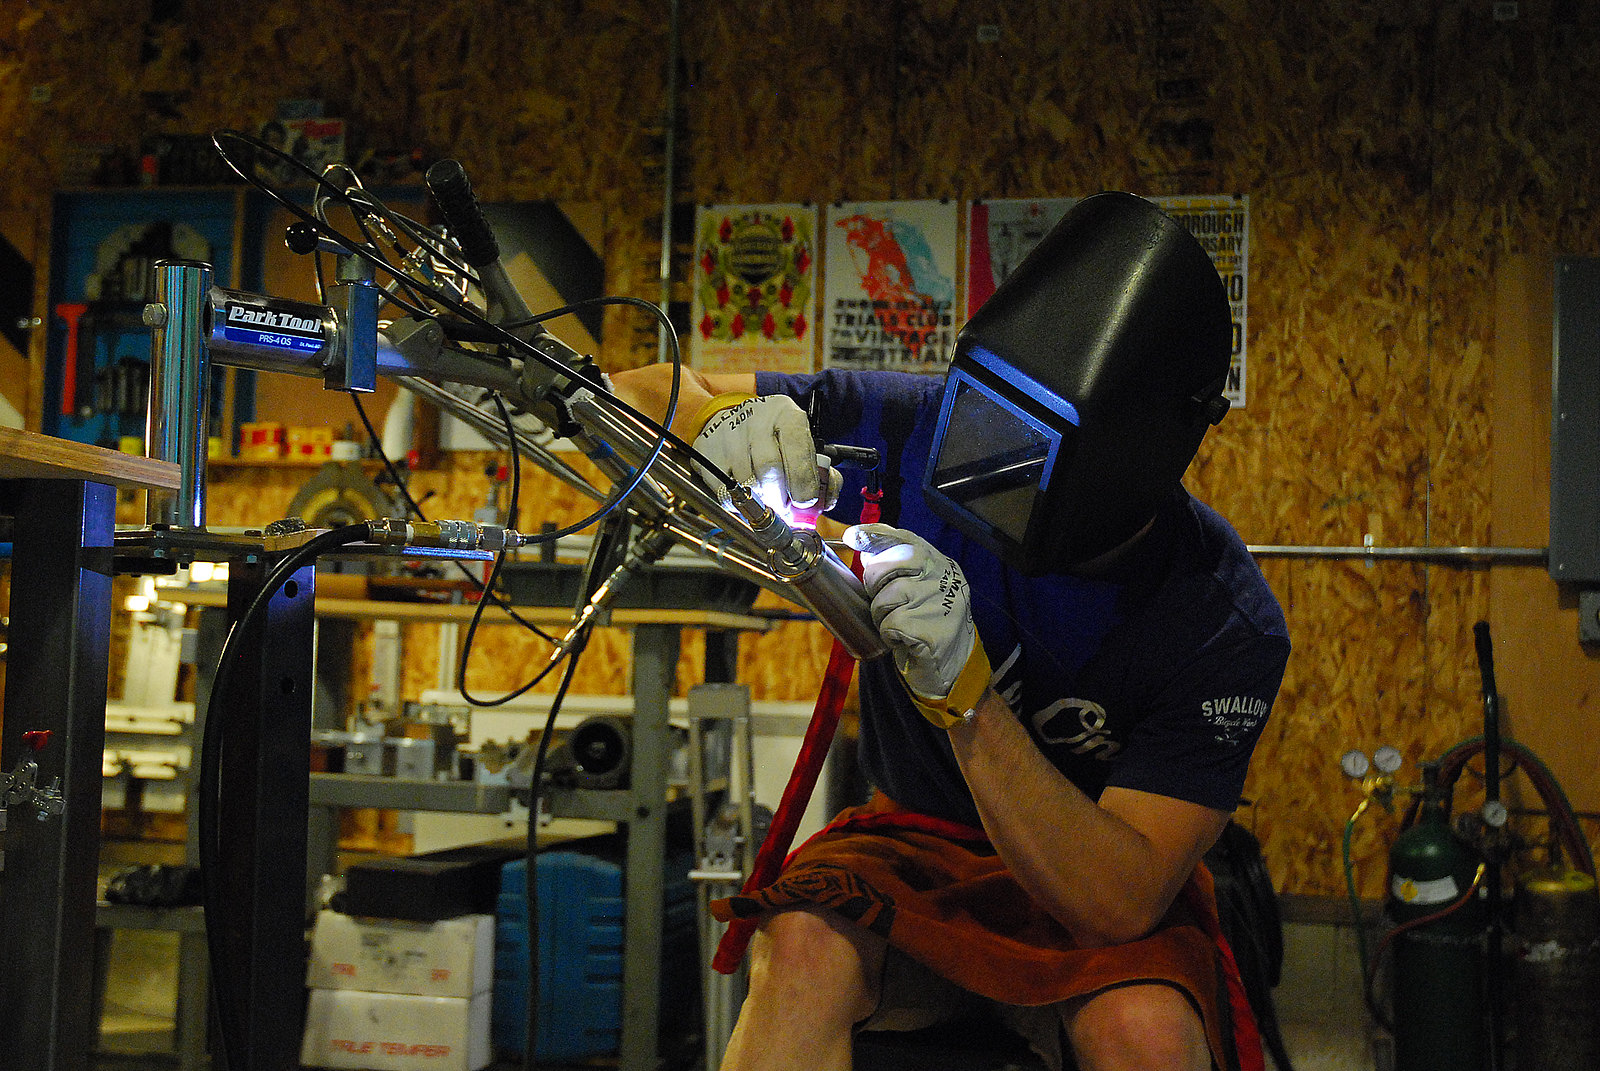 Welding that Head Tube